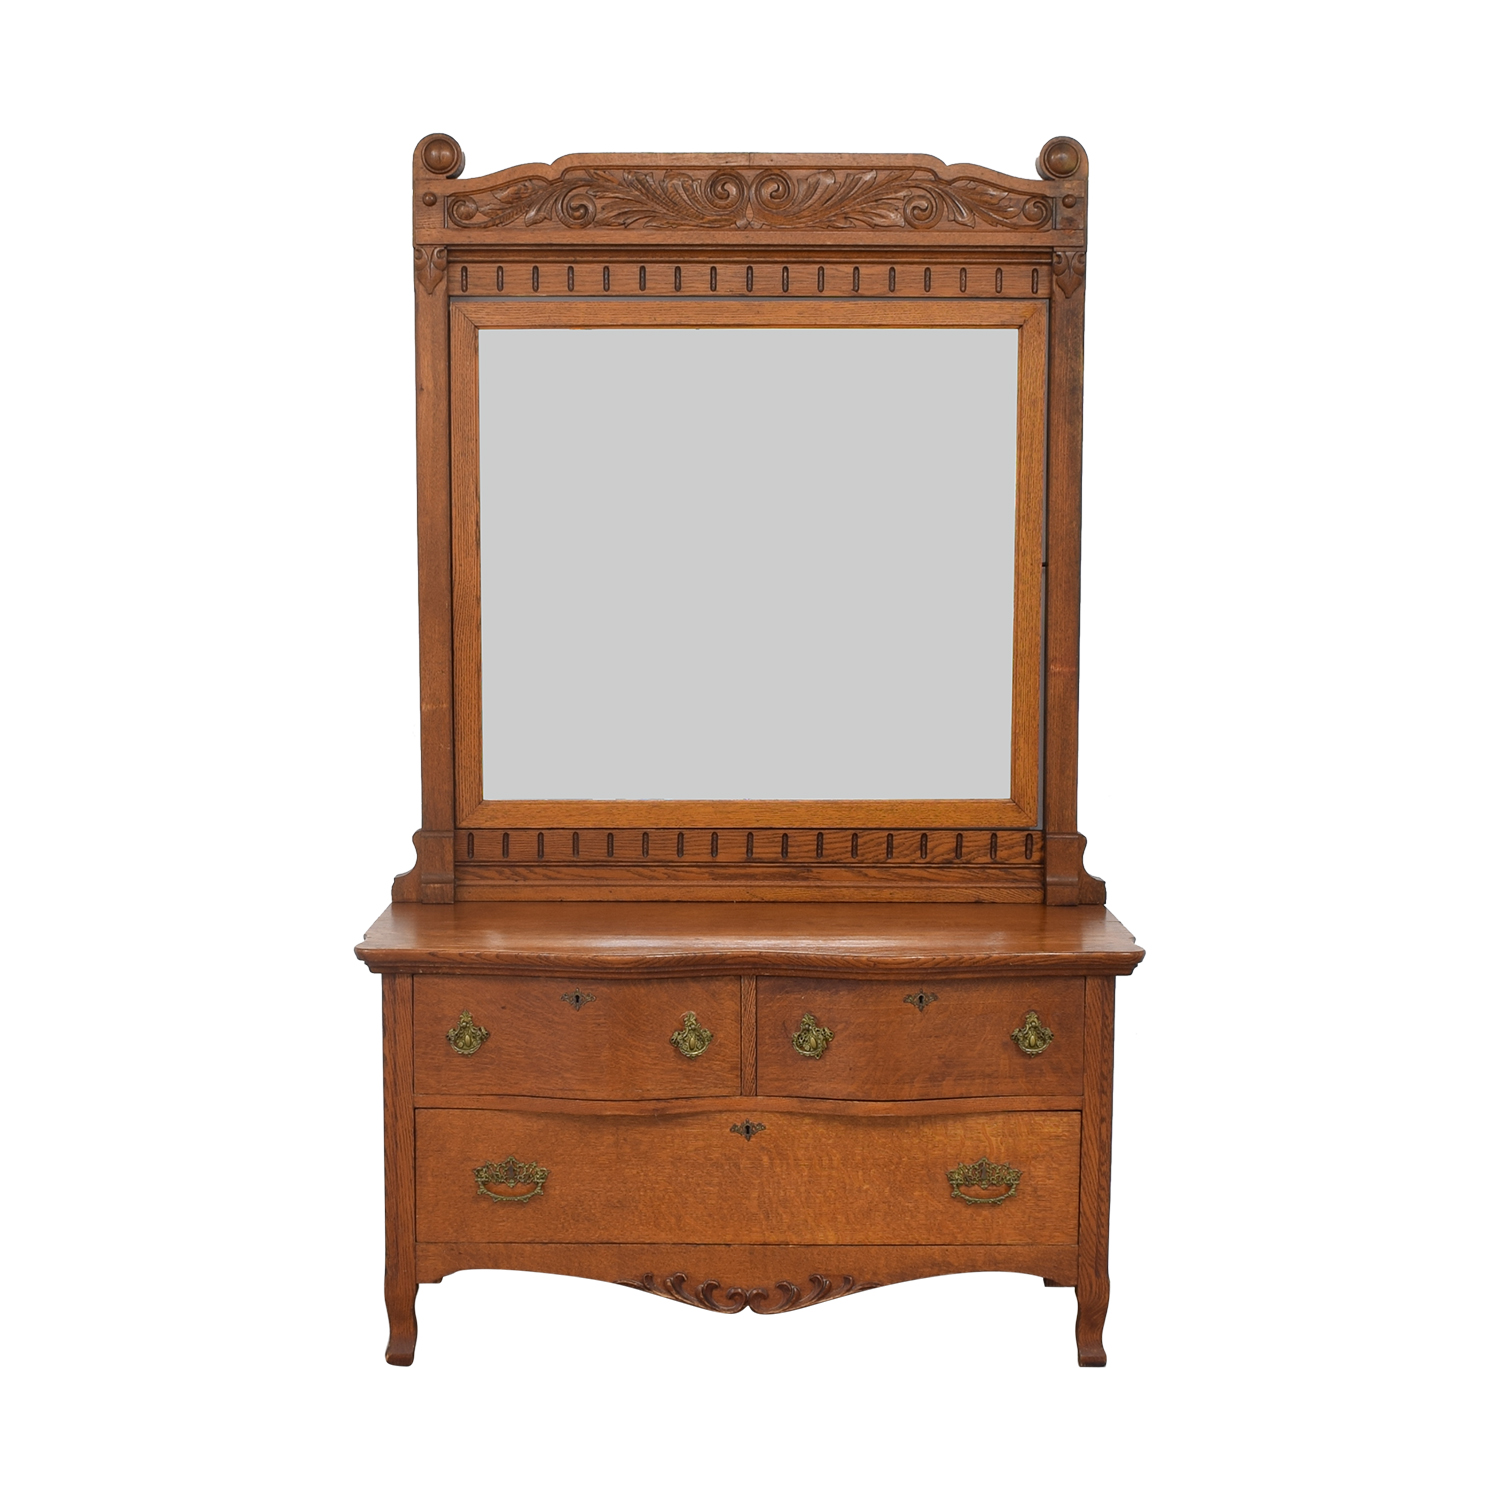 Woodward Furniture Works Woodward Furniture Works Dresser with Mirror nj